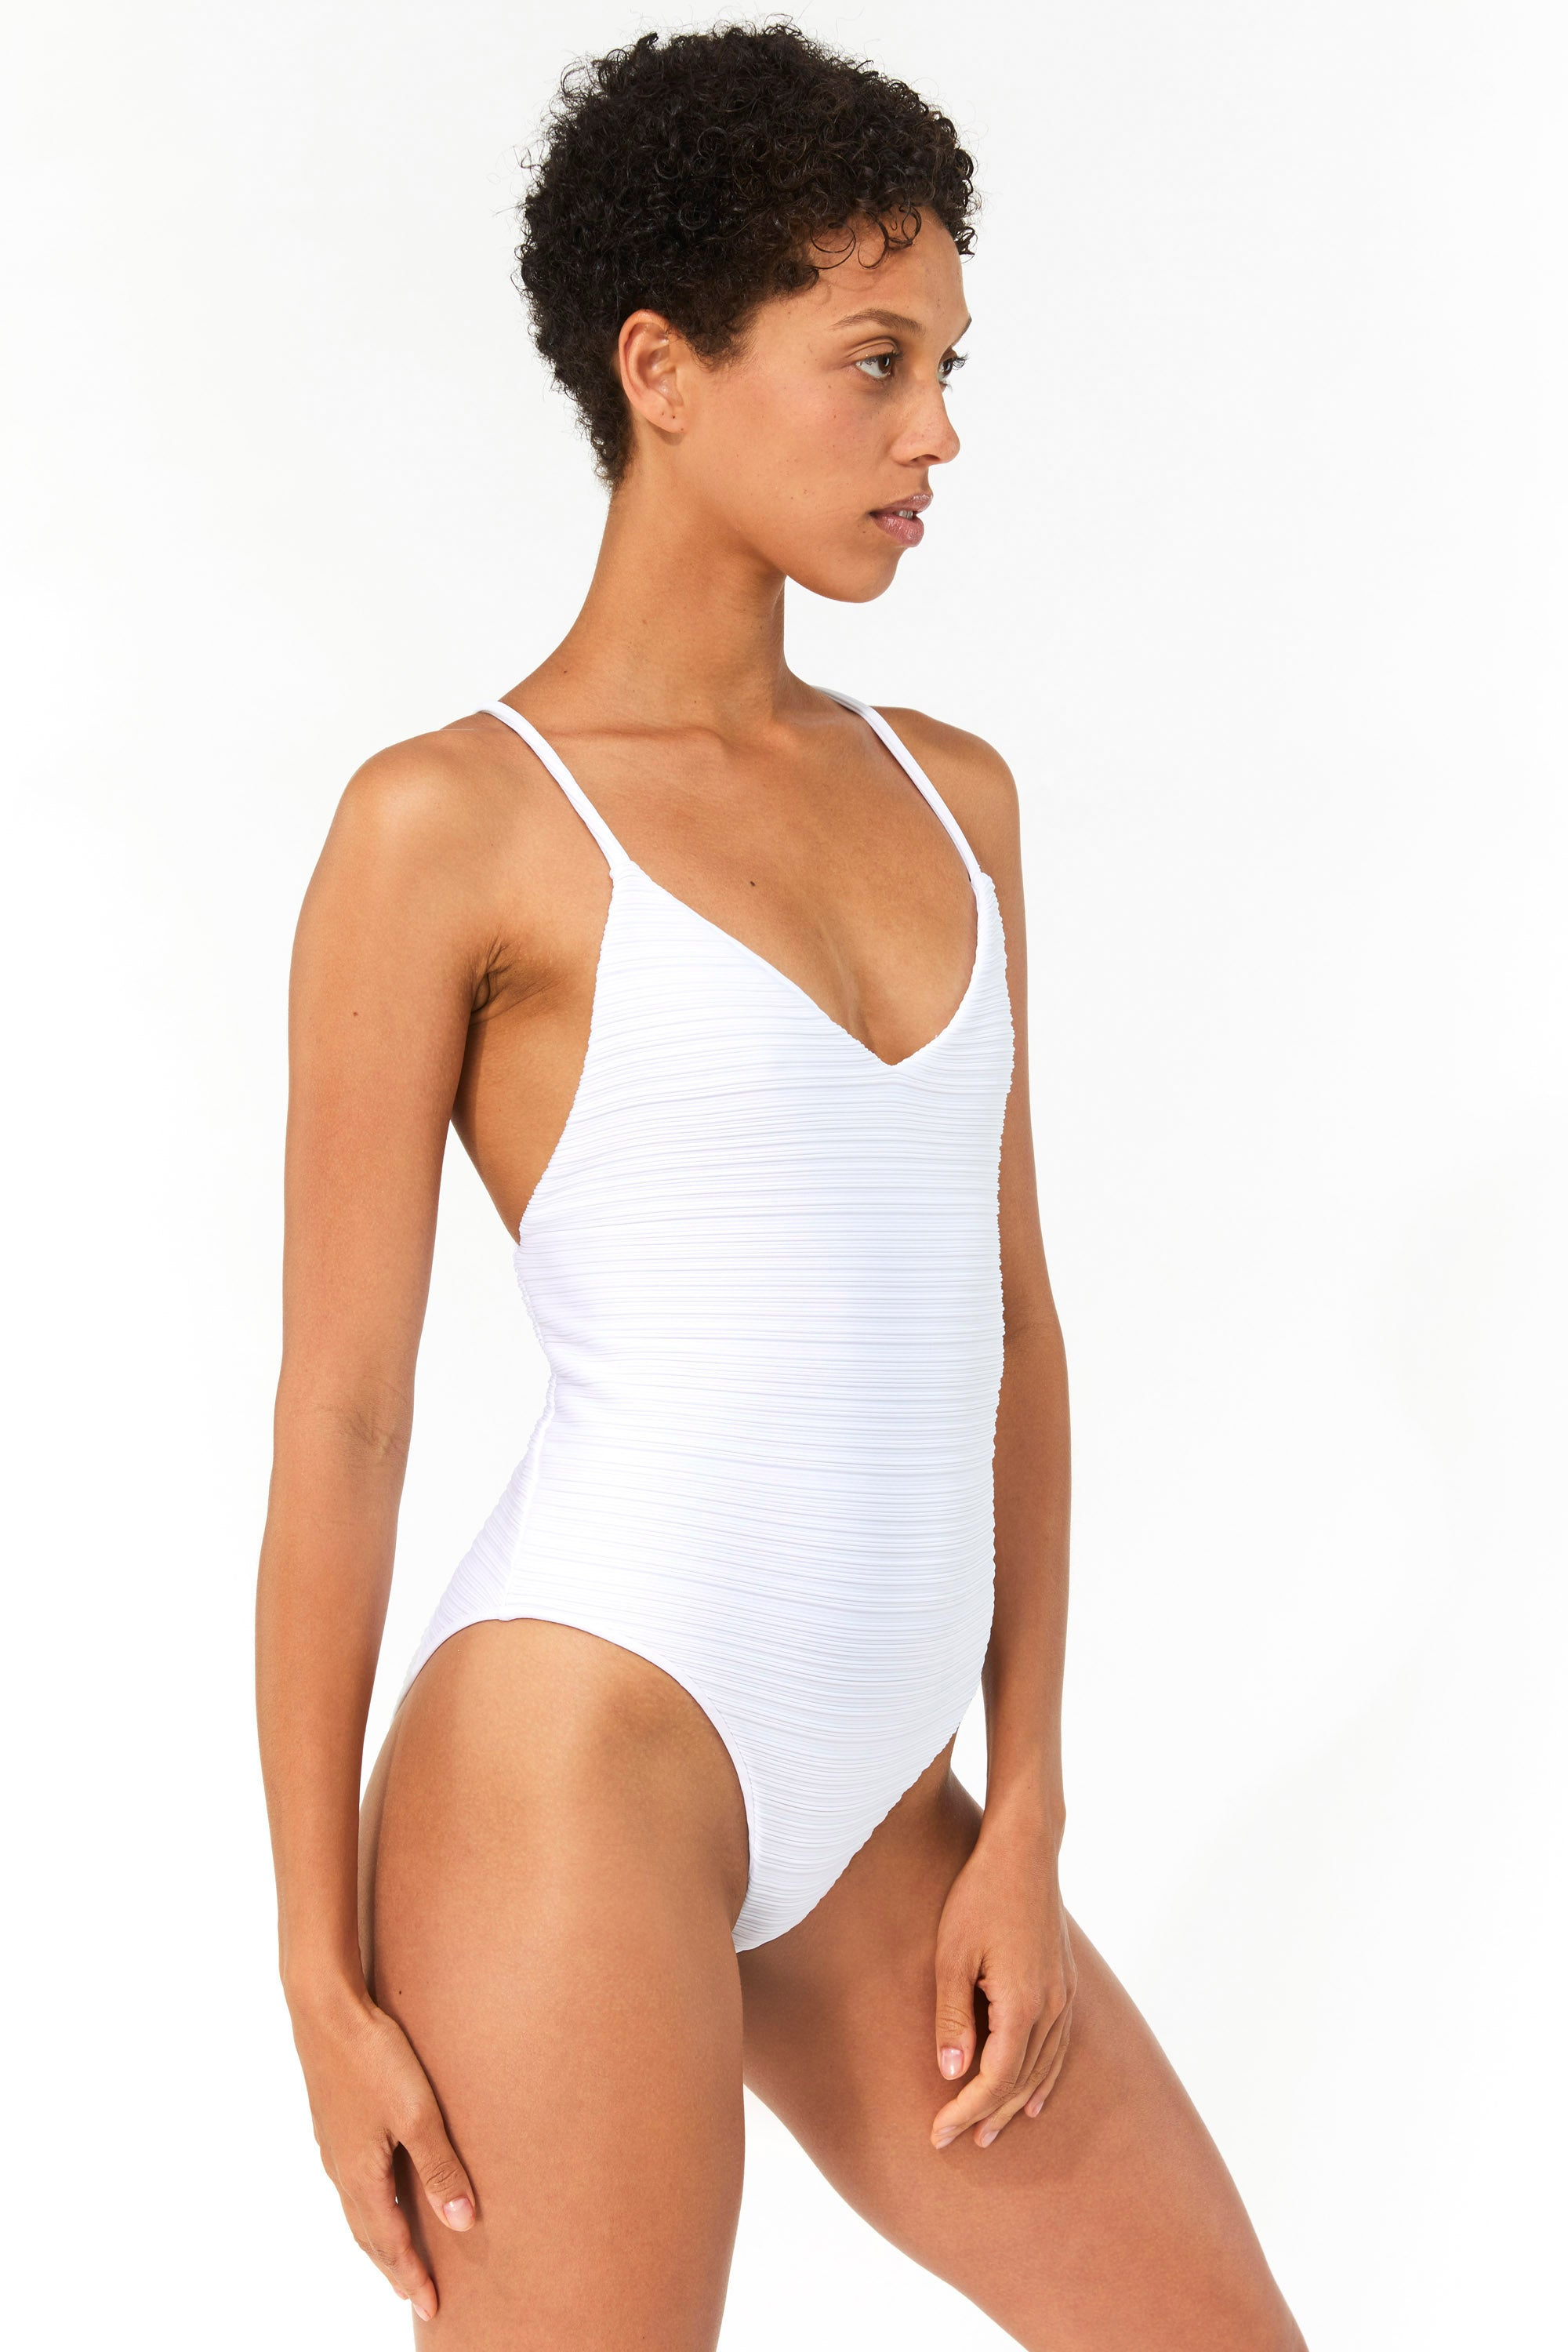 Mara Hoffman White Emma One Piece Bathing Suit in Repreve (side)